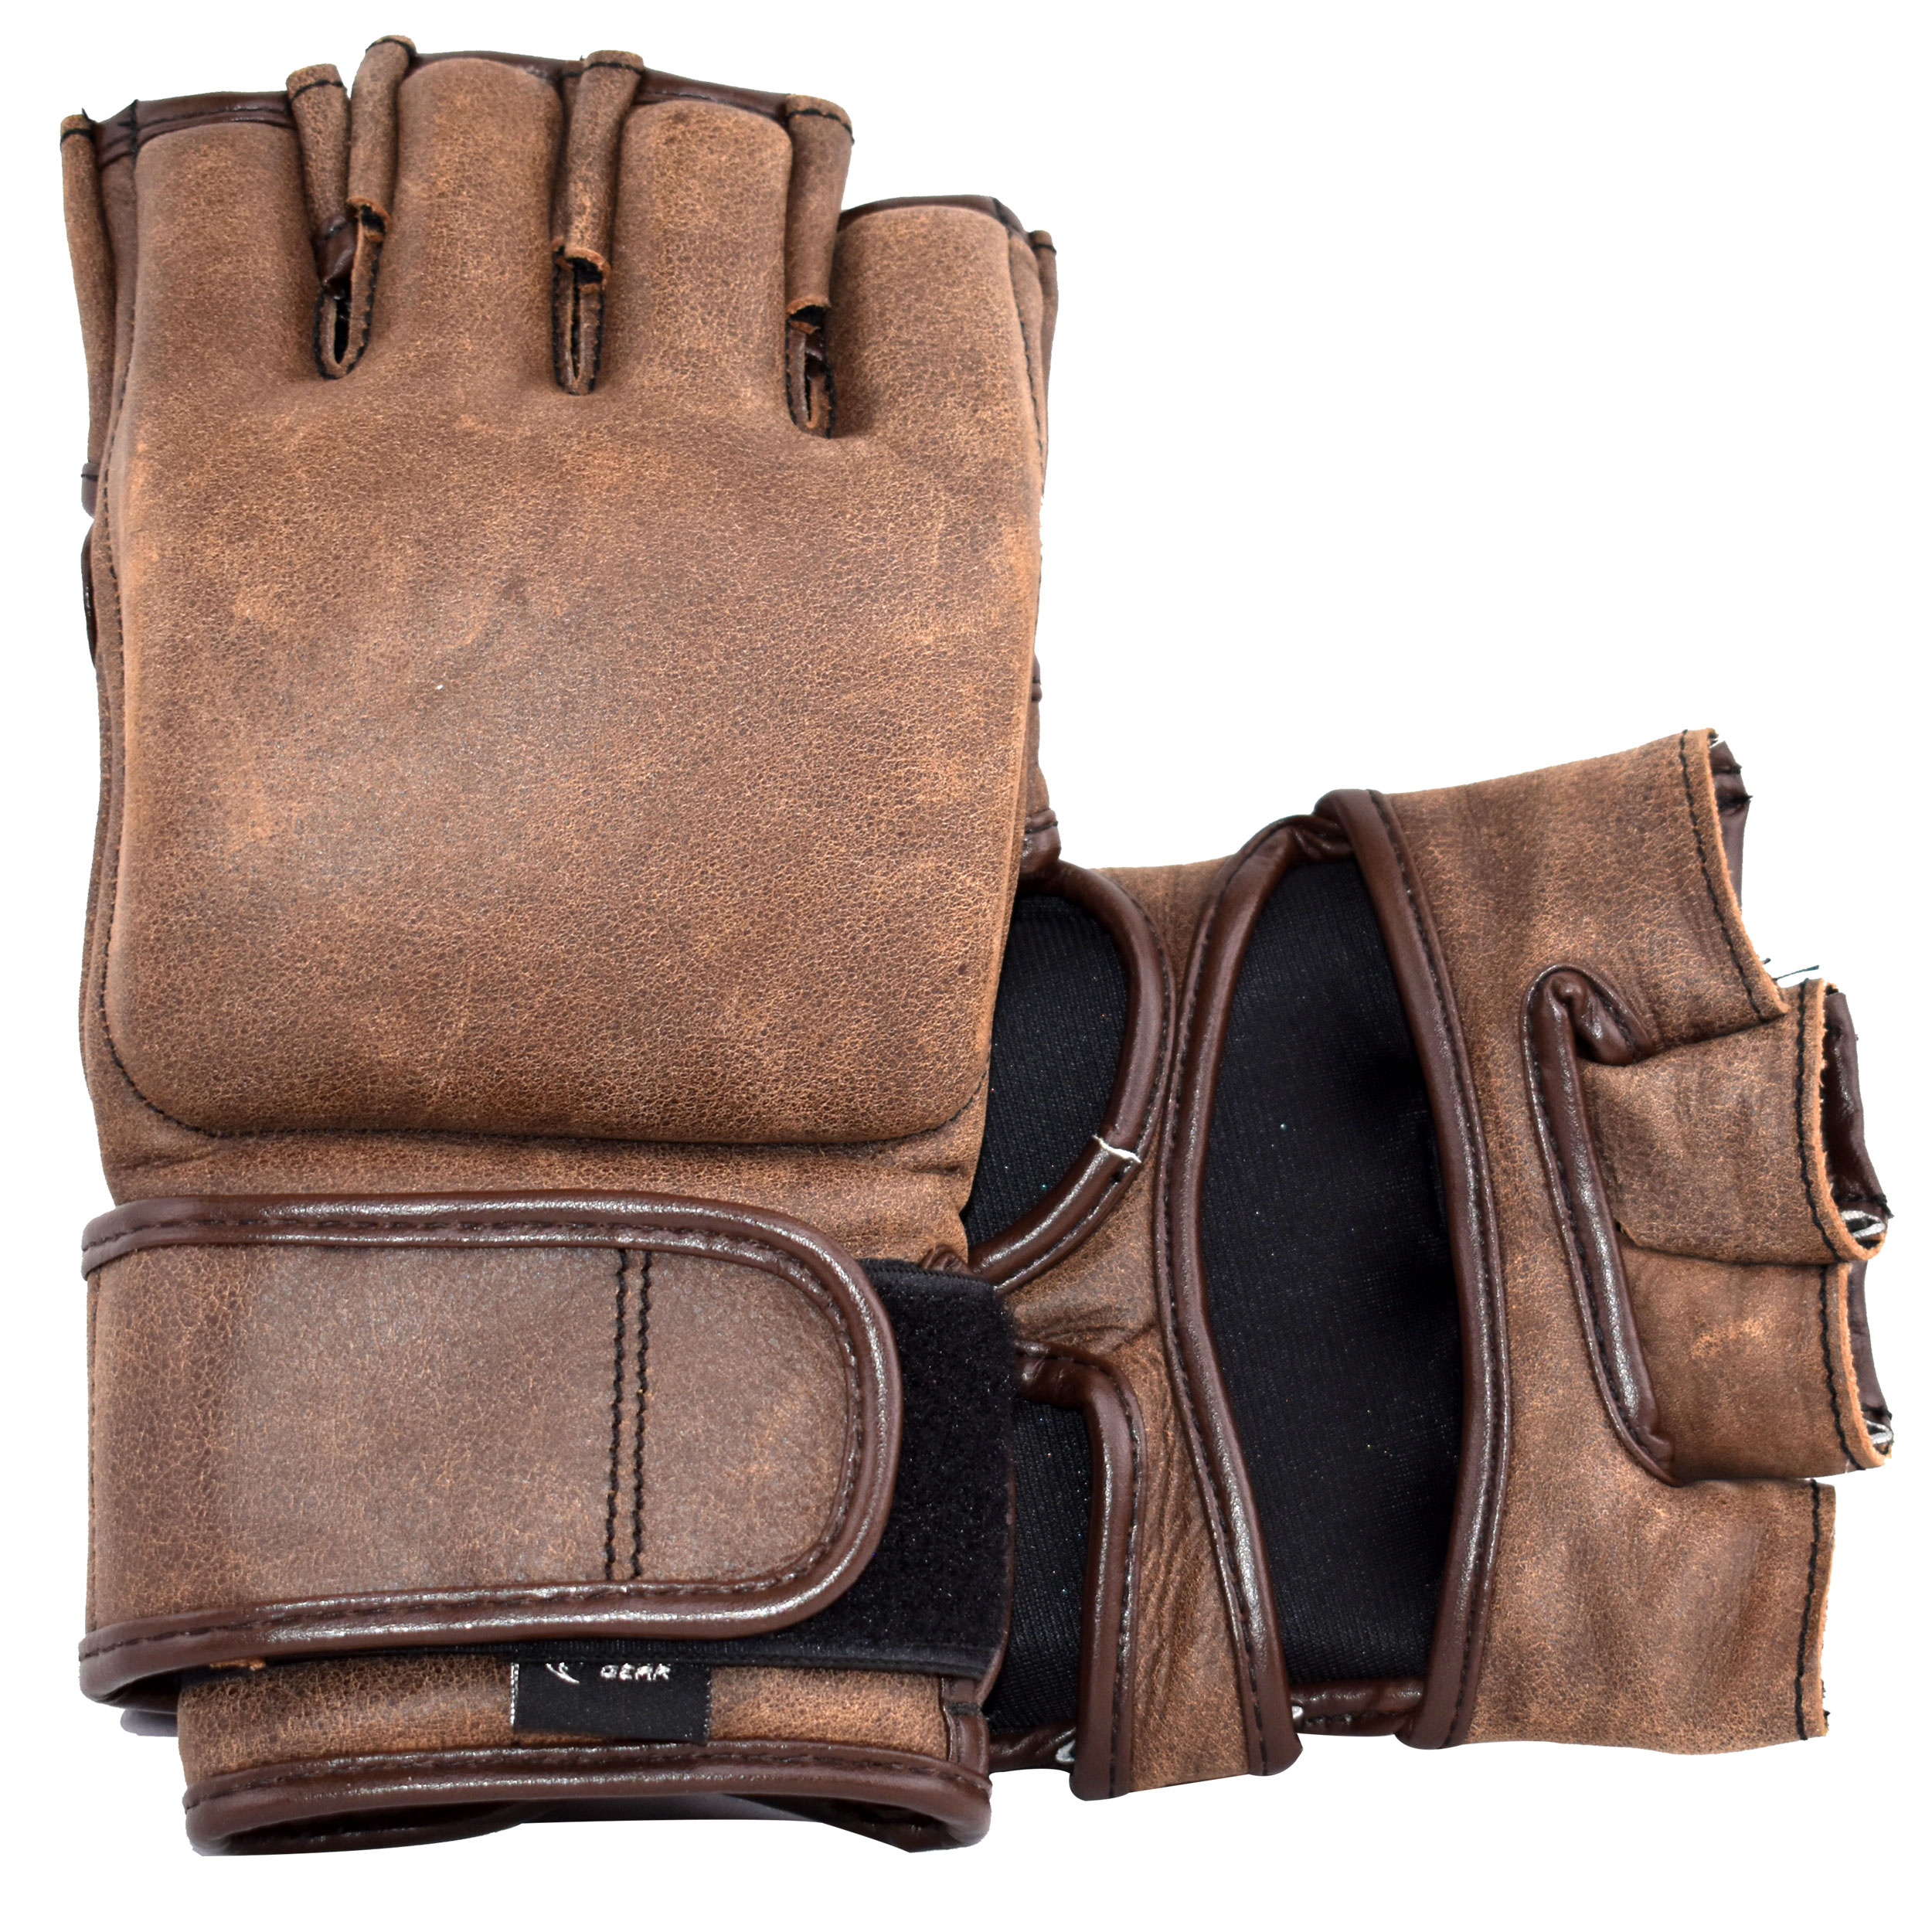 Image result for leather fighting gloves